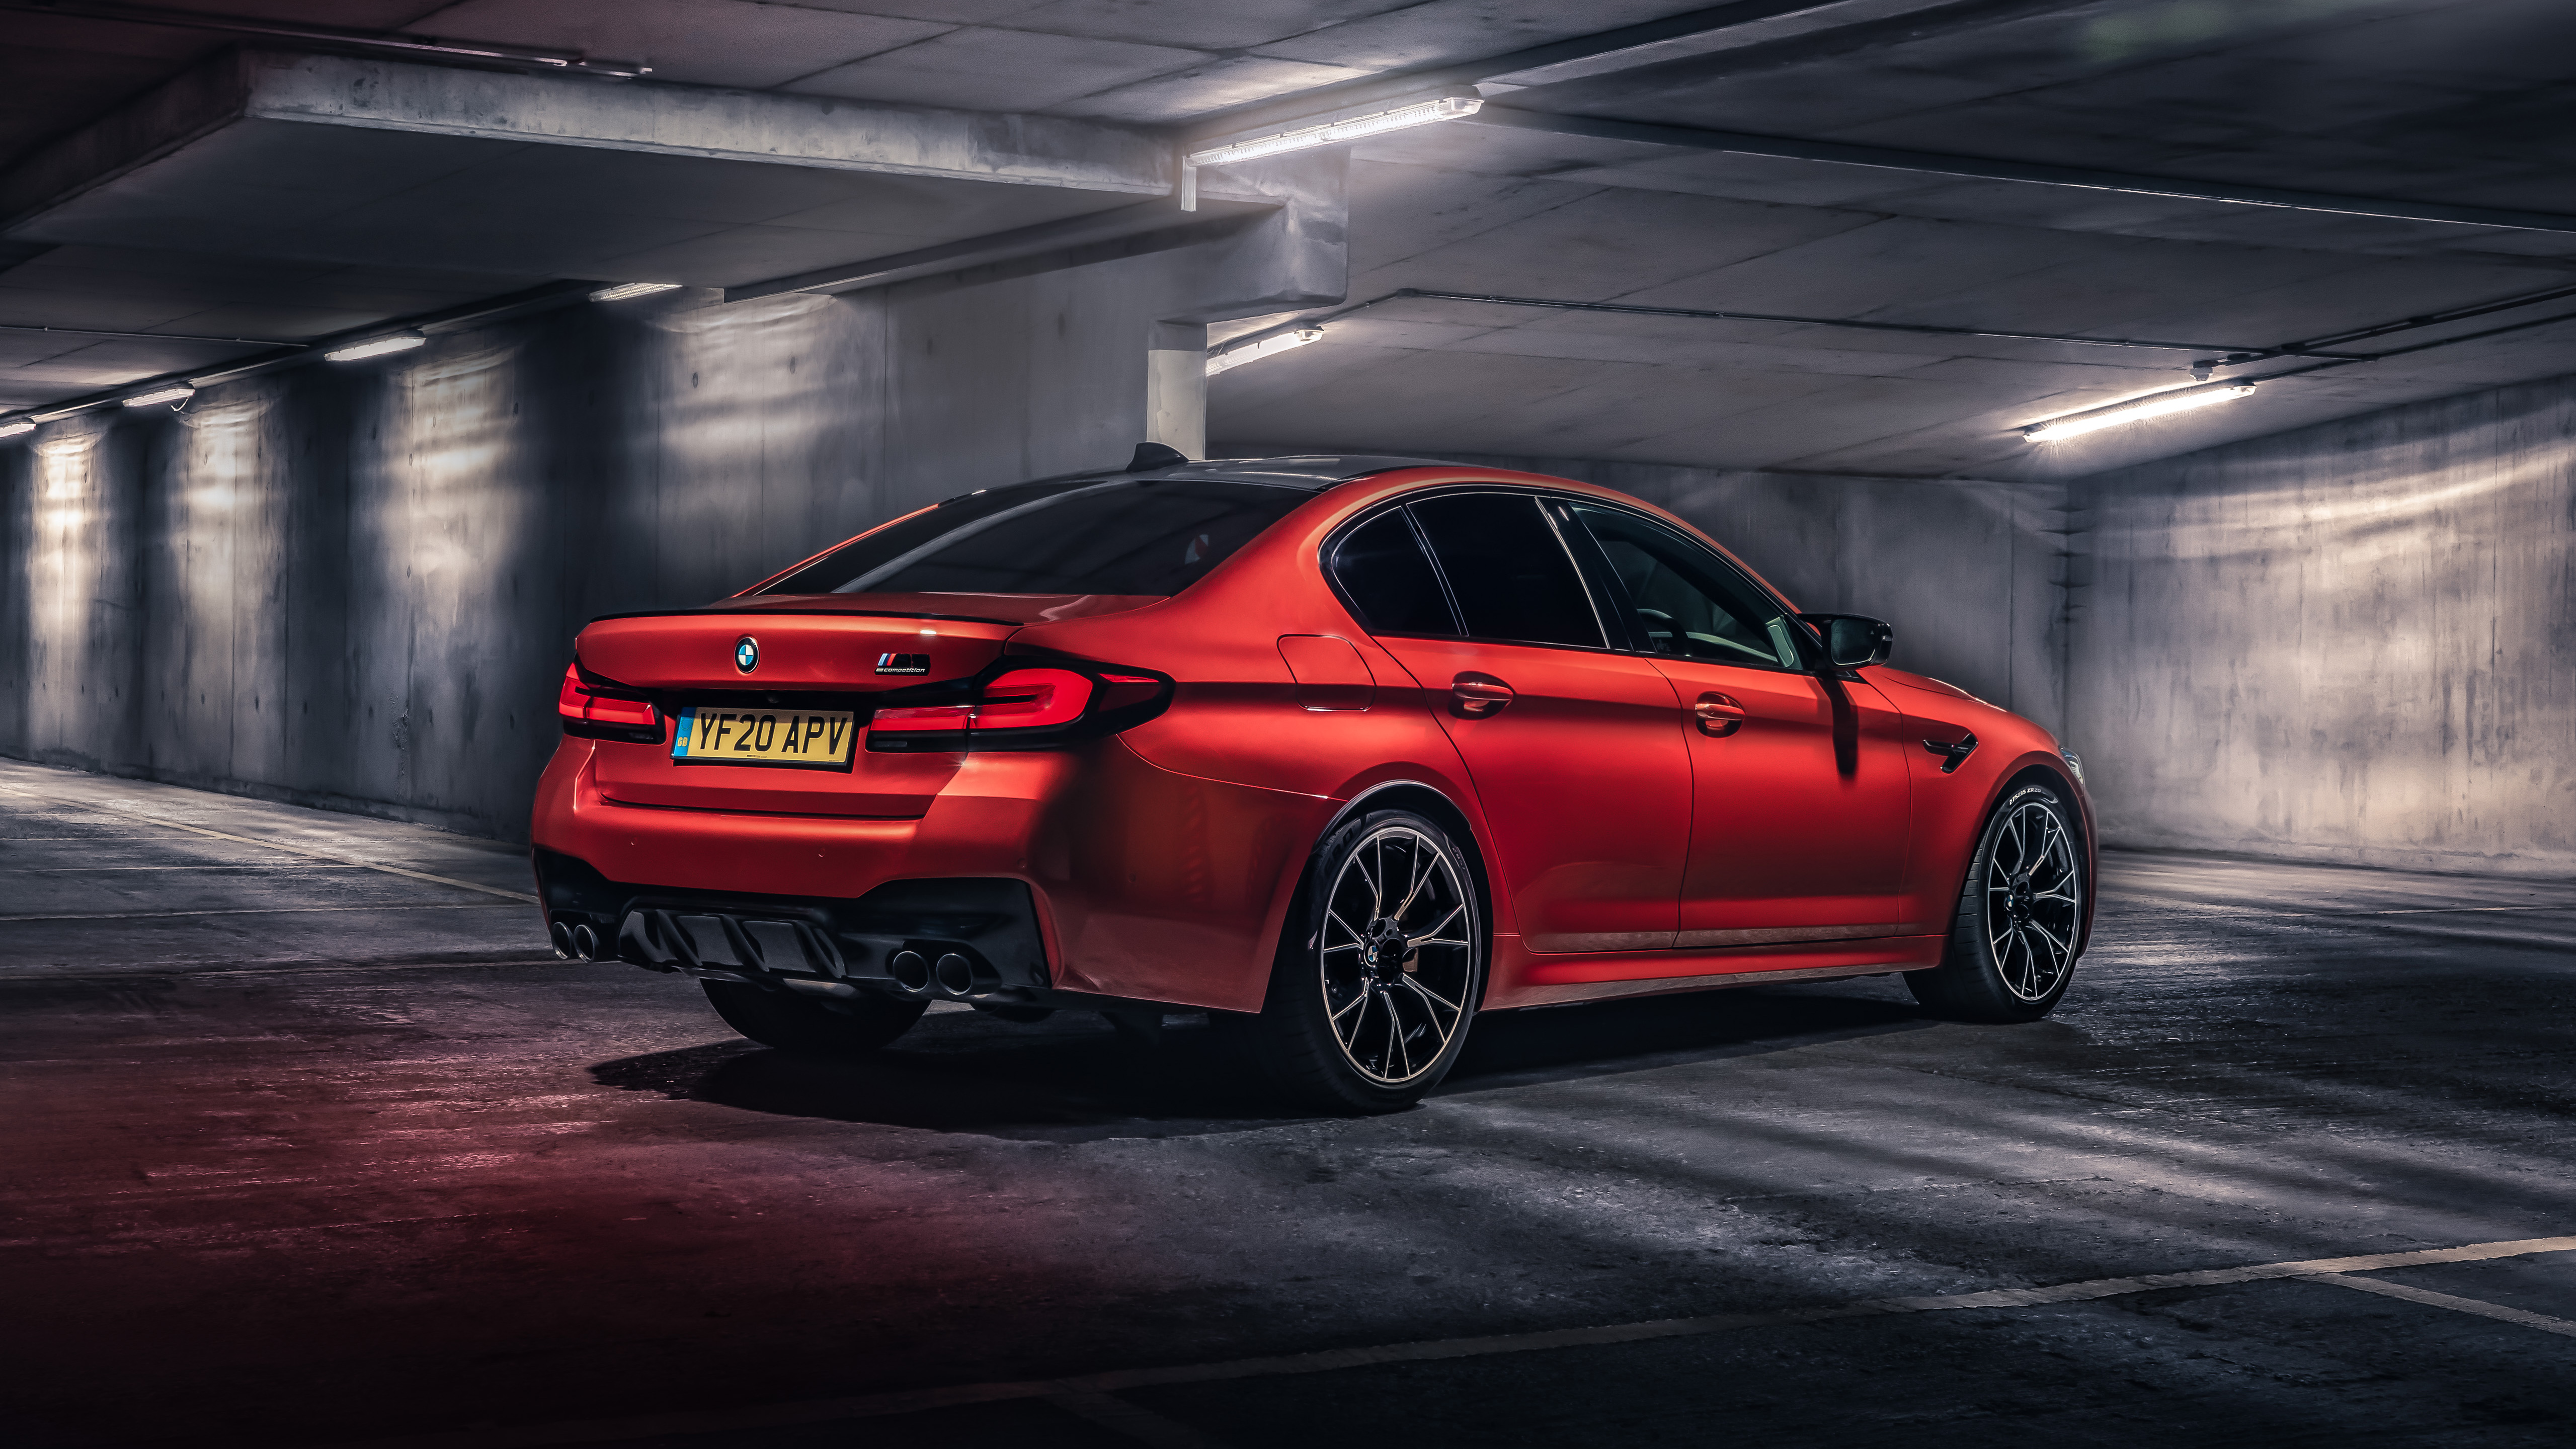 BMW M5 Competition 2020 5K 2 Wallpaper   HD Car Wallpapers ...